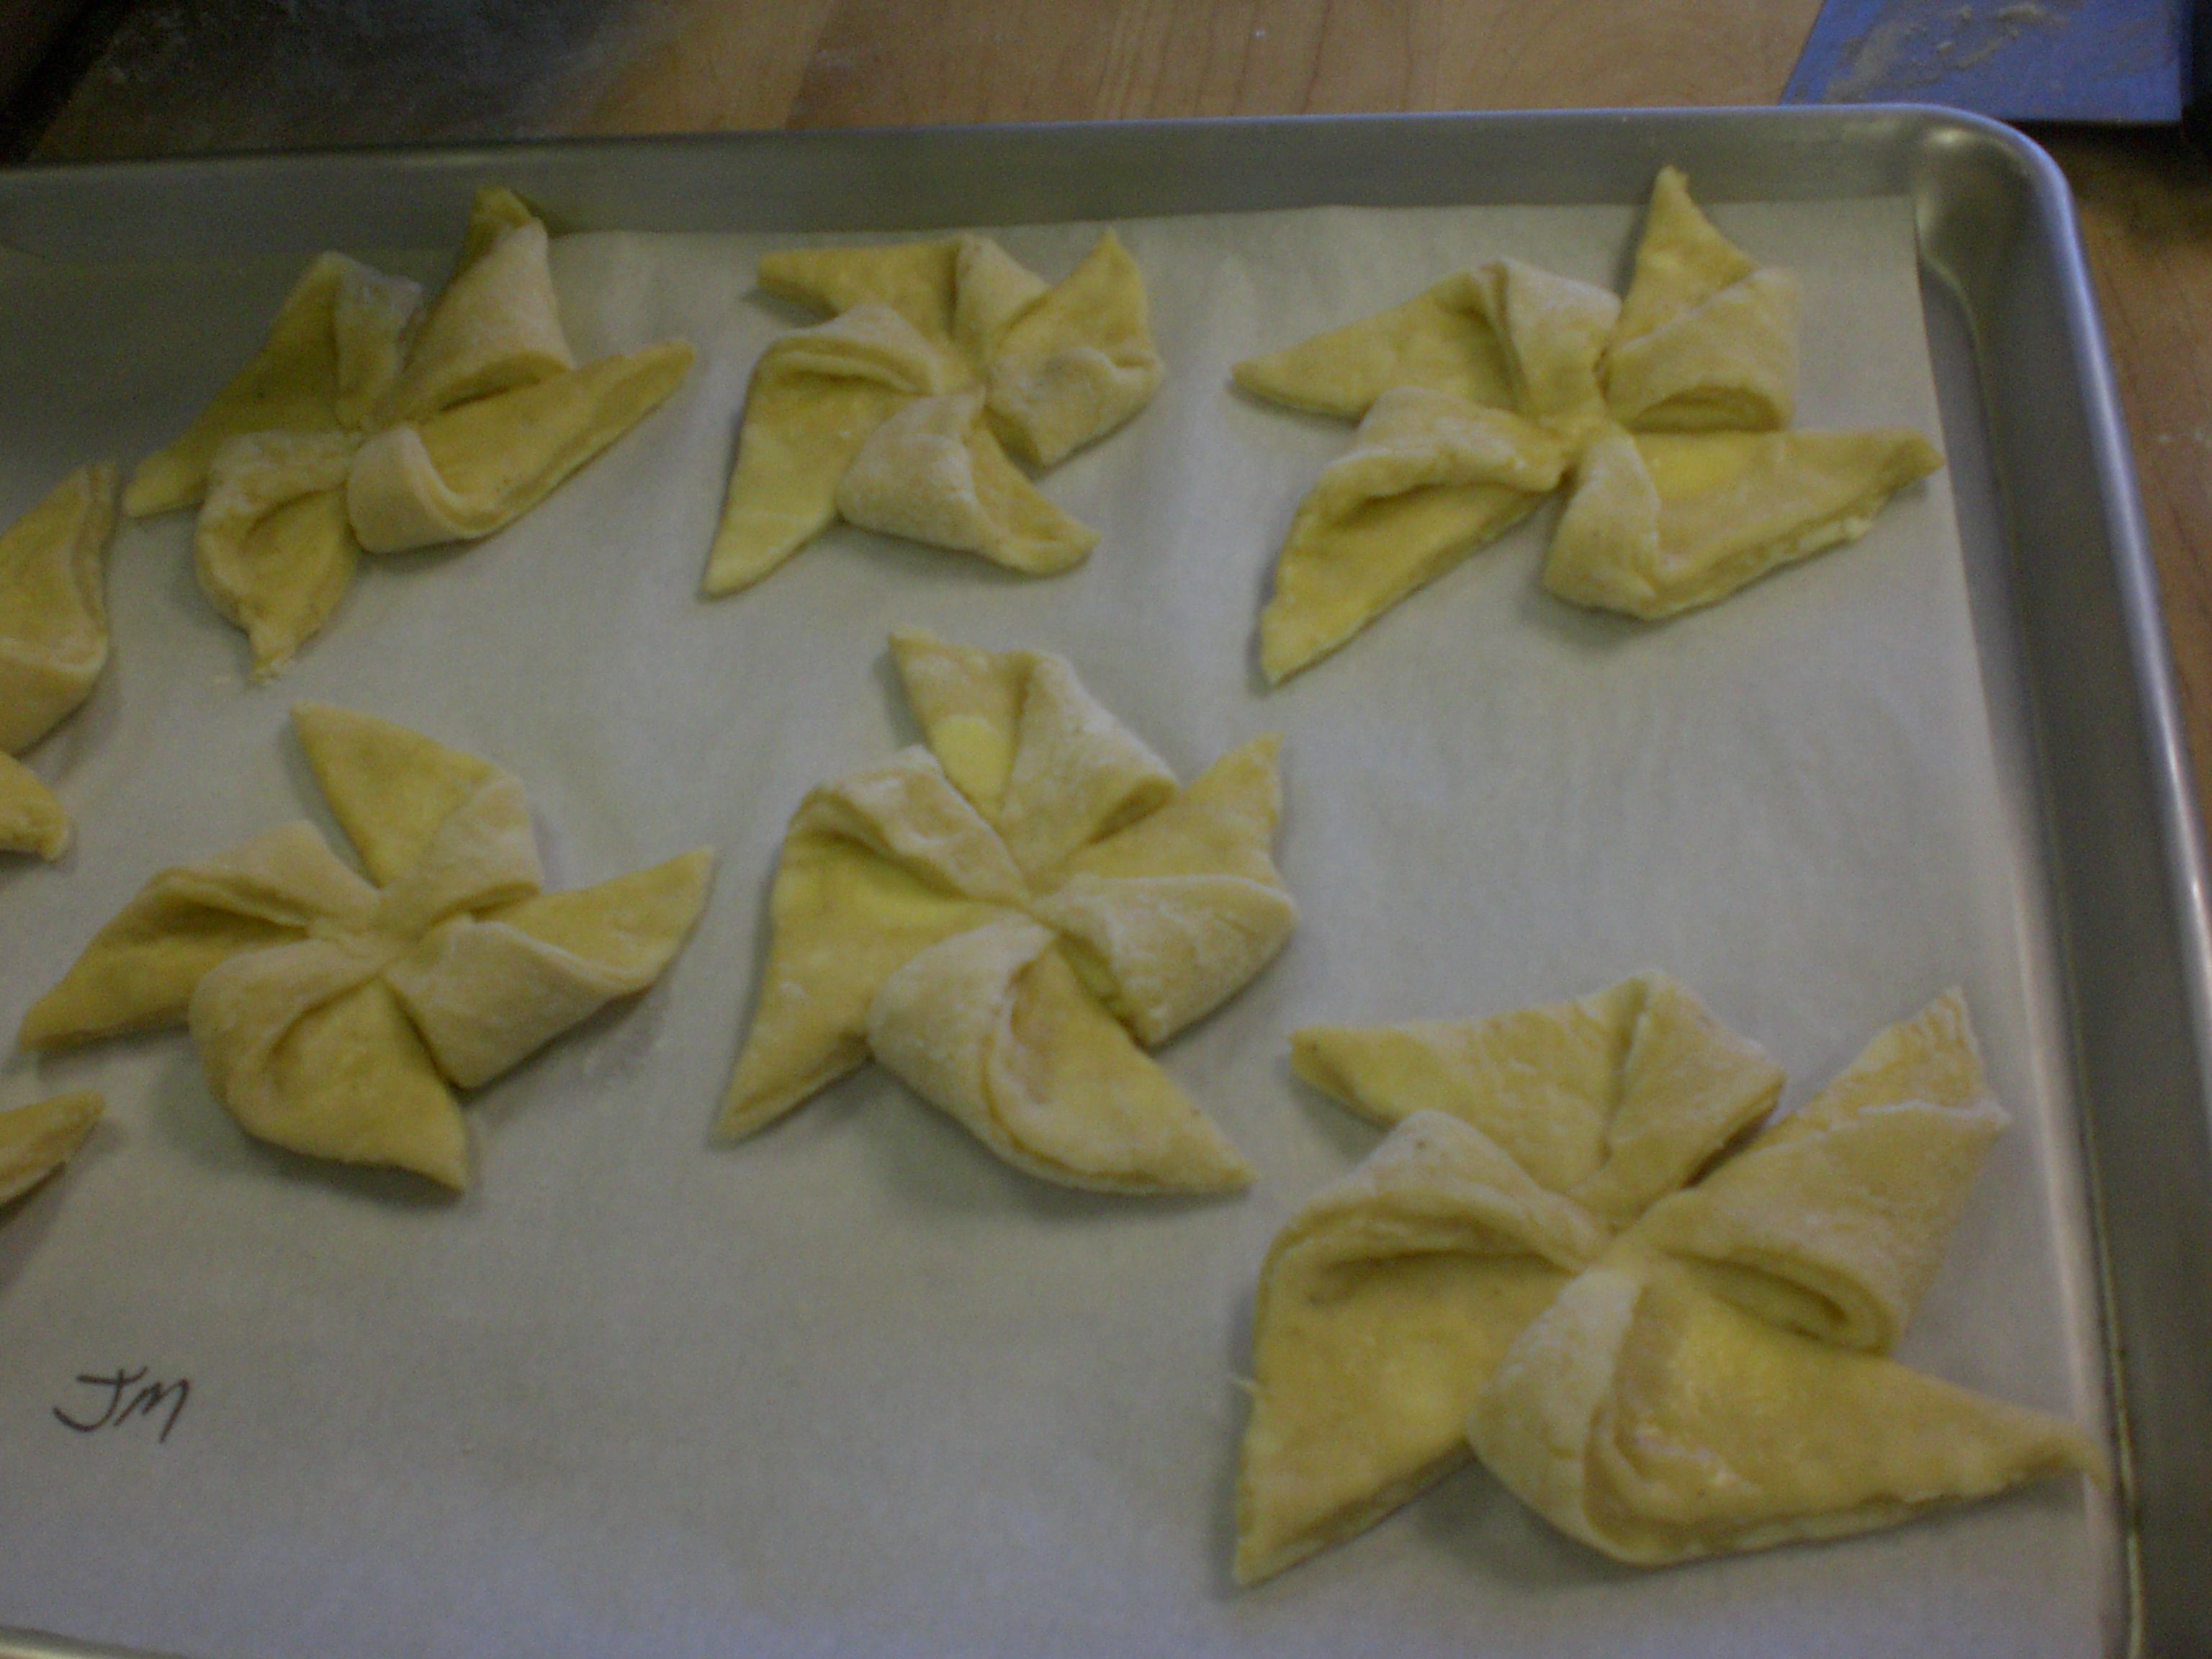 Pinwheel danish prior to baking